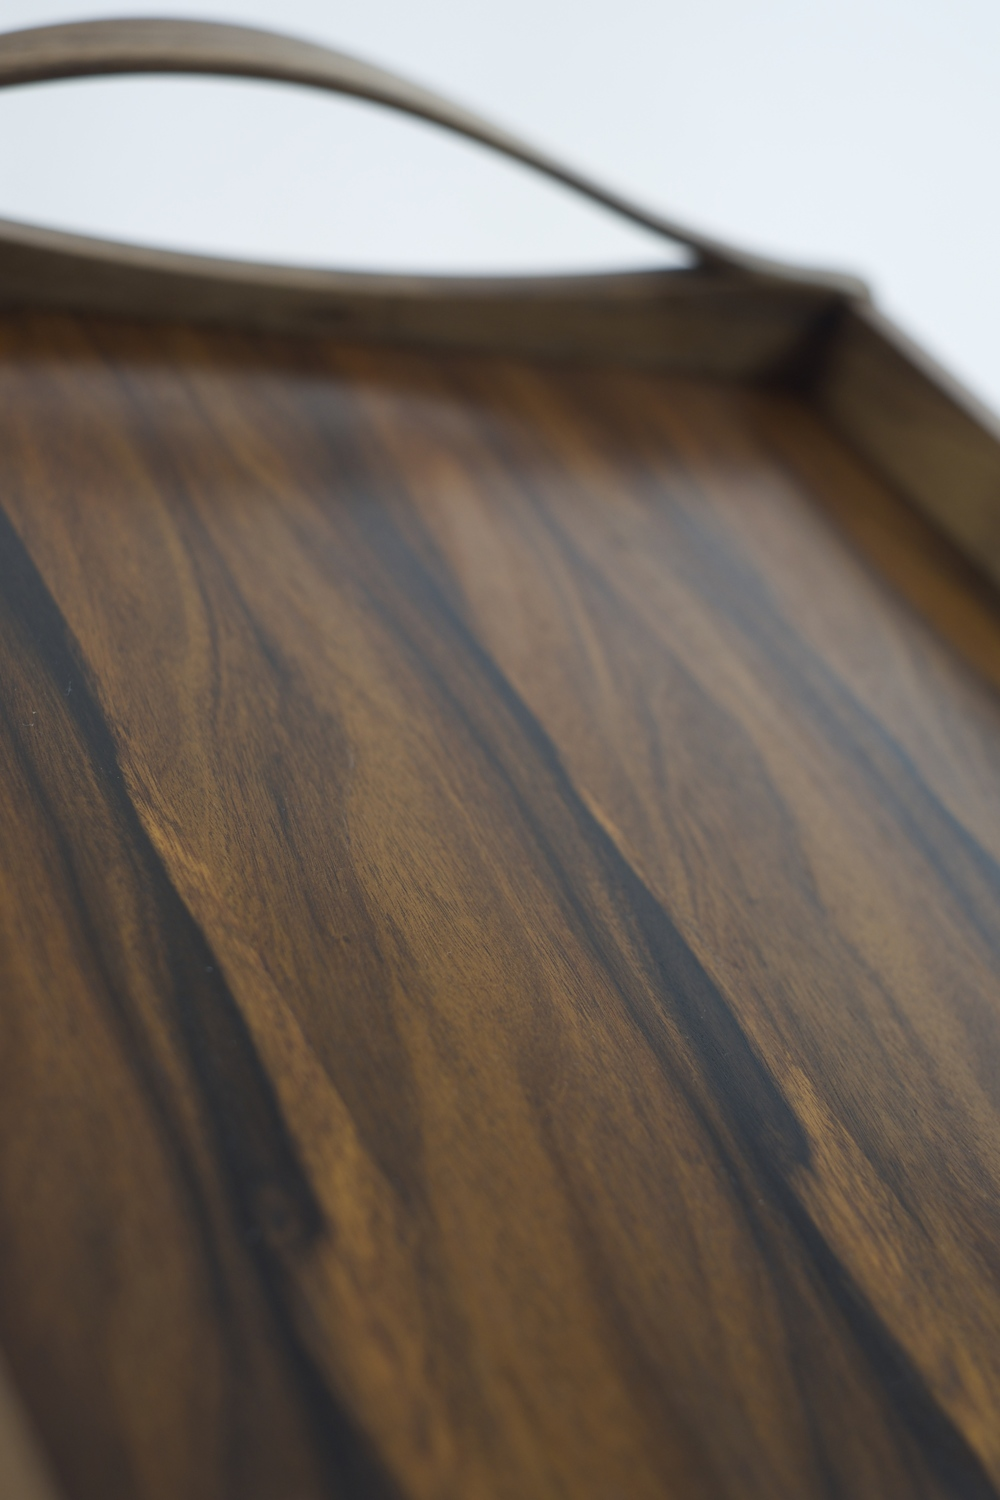 Bond's Whiskey Tray - Detailed shot of book-matched veneers